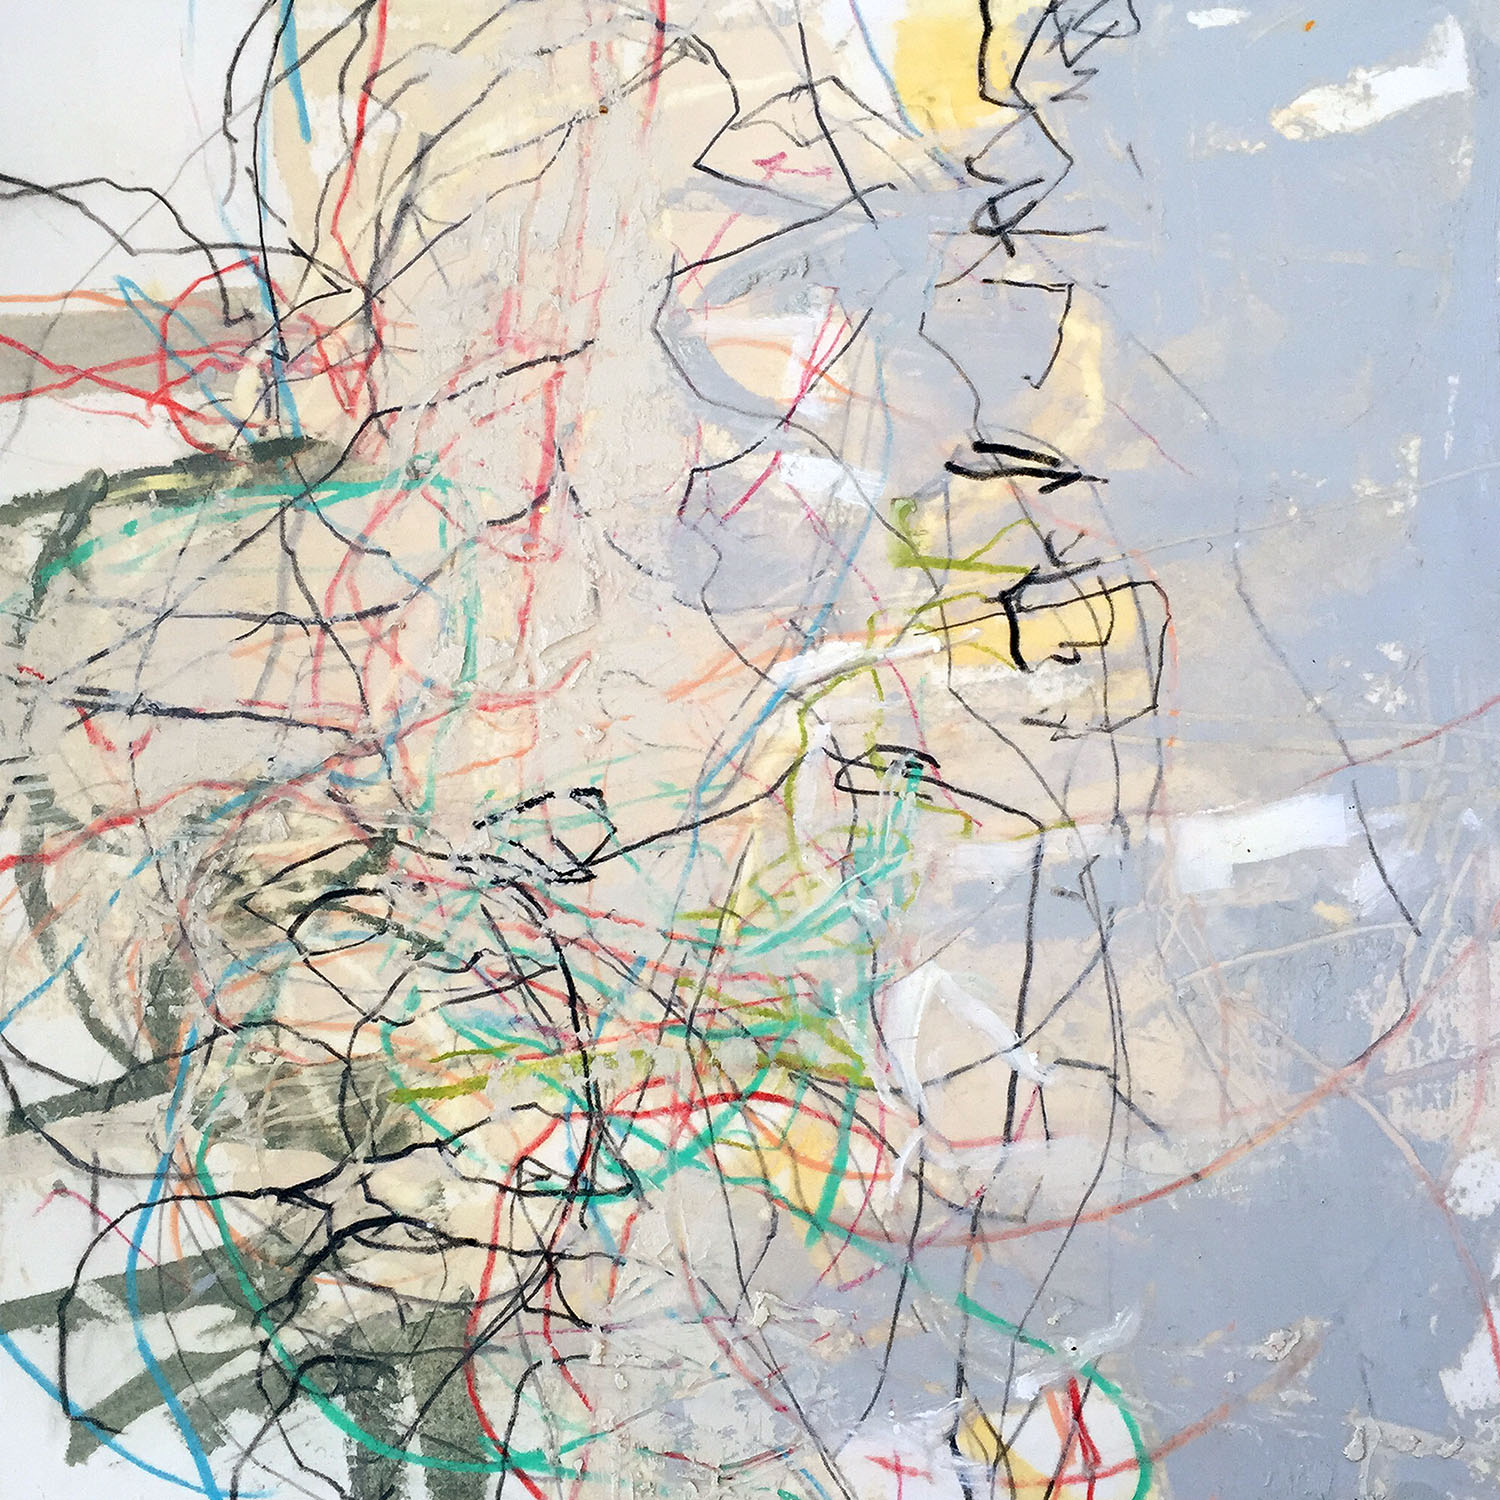 John Wood   Tinged Authenticity  mixed media on paper mounted on wood 13' x 13'